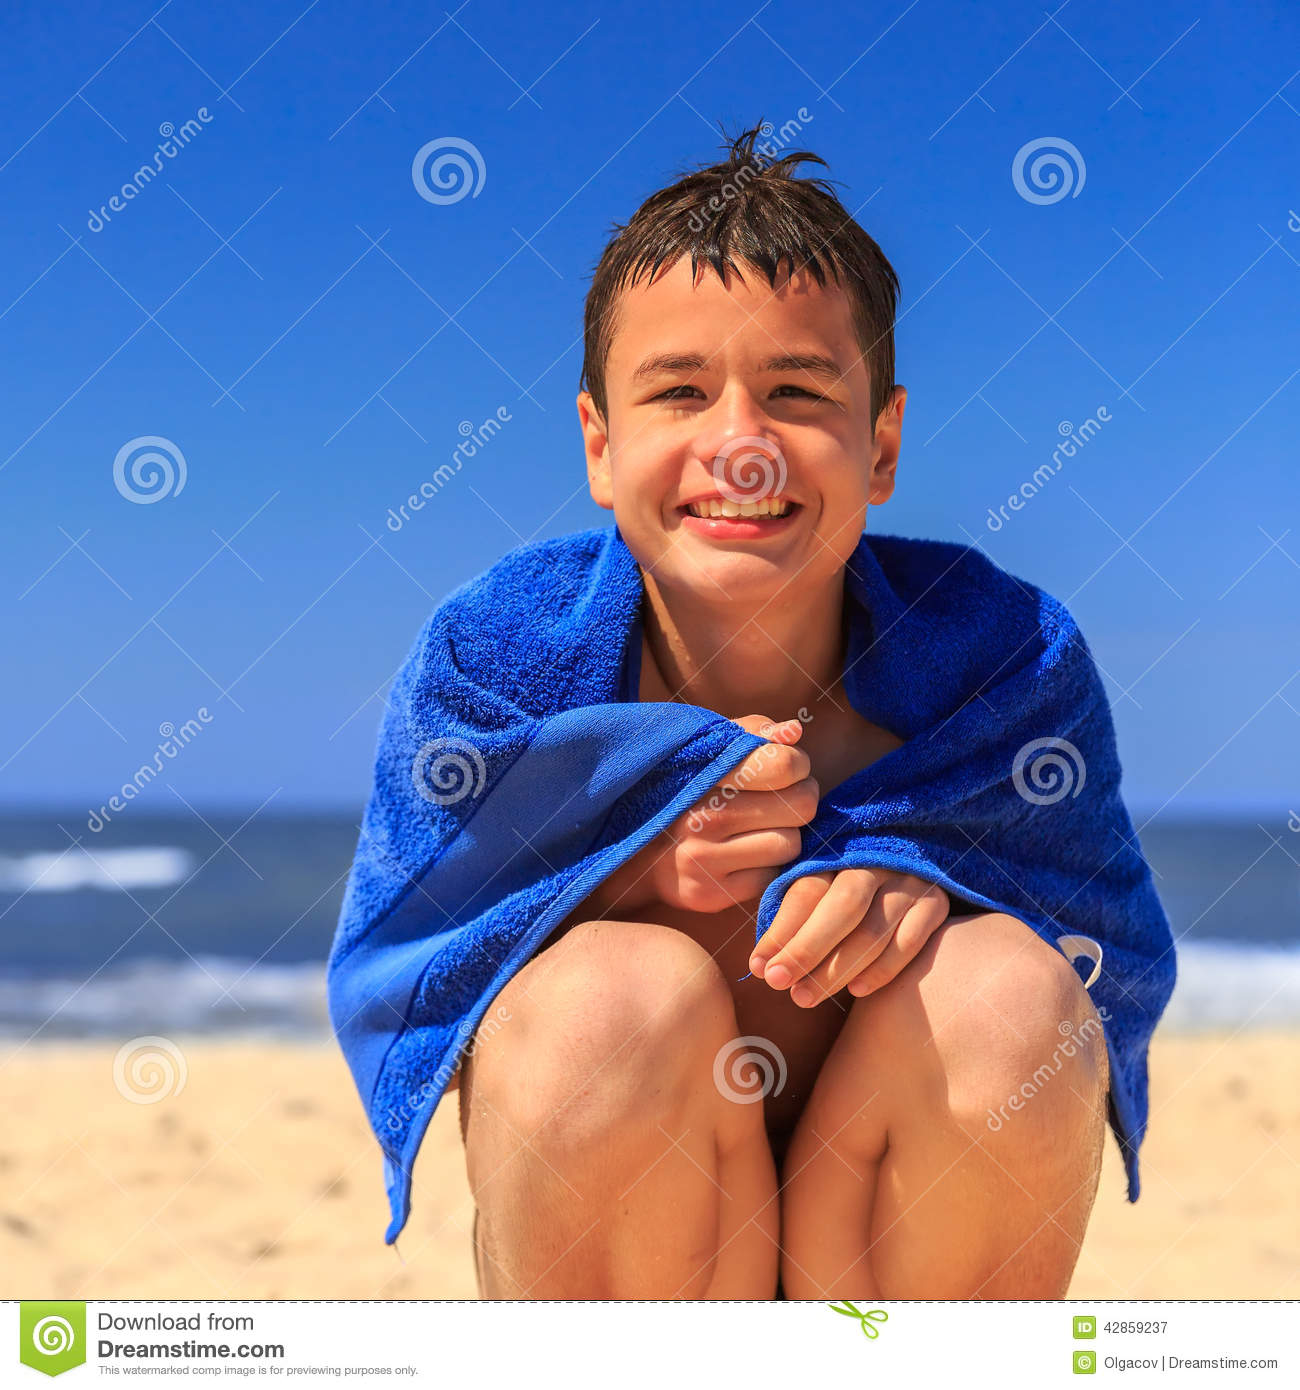 Face Towel Dream Meaning: Happy Young Boy On The Sea Beach Stock Image